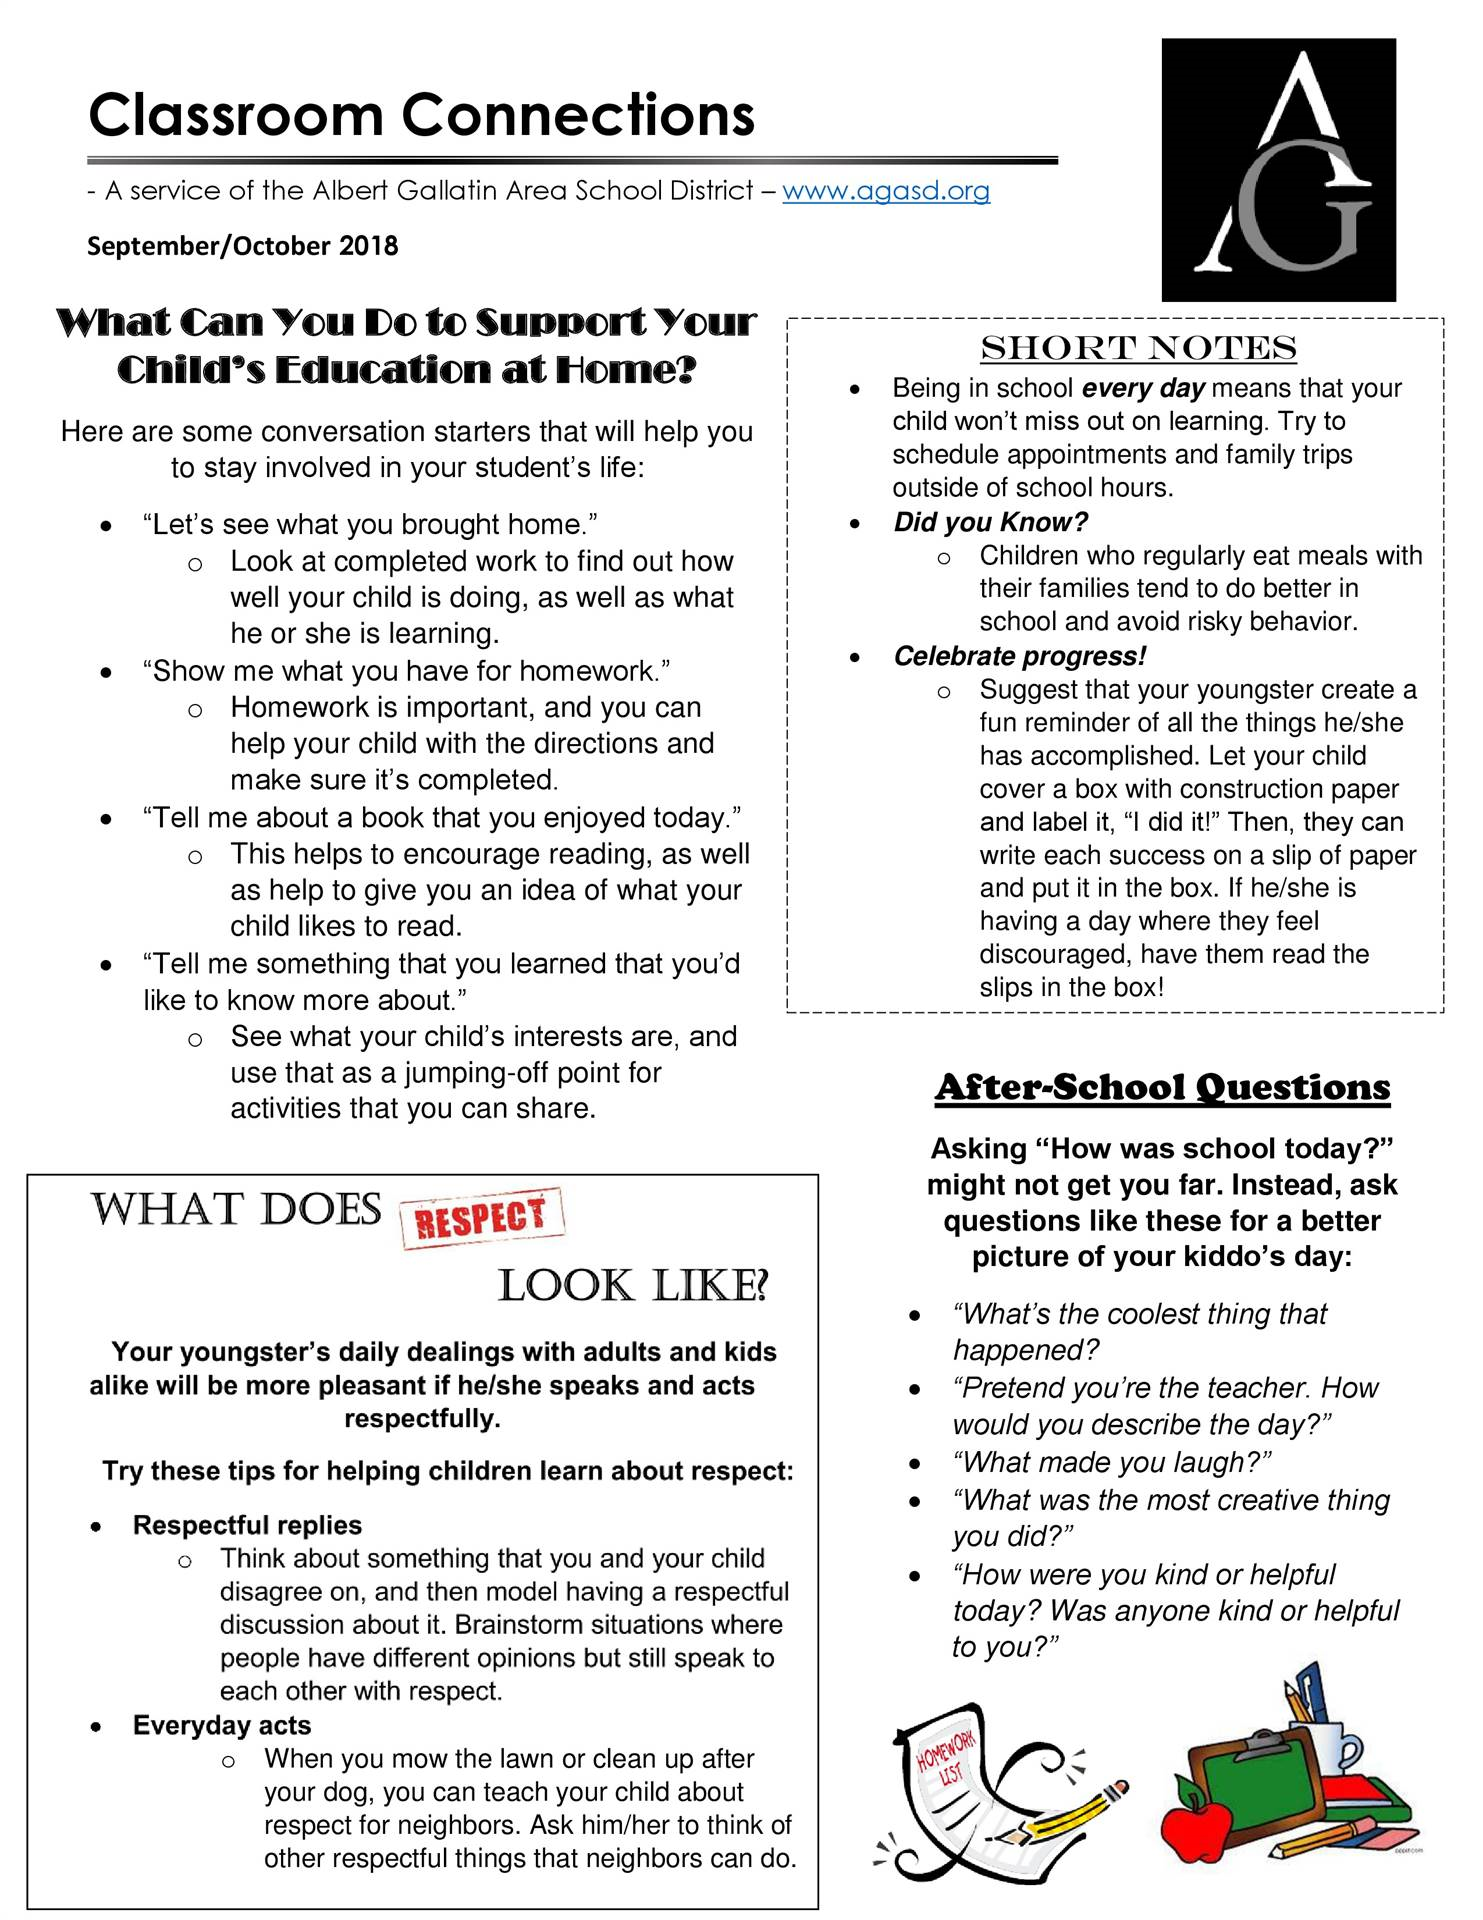 Classroom Connections September-October 2018 newsletter